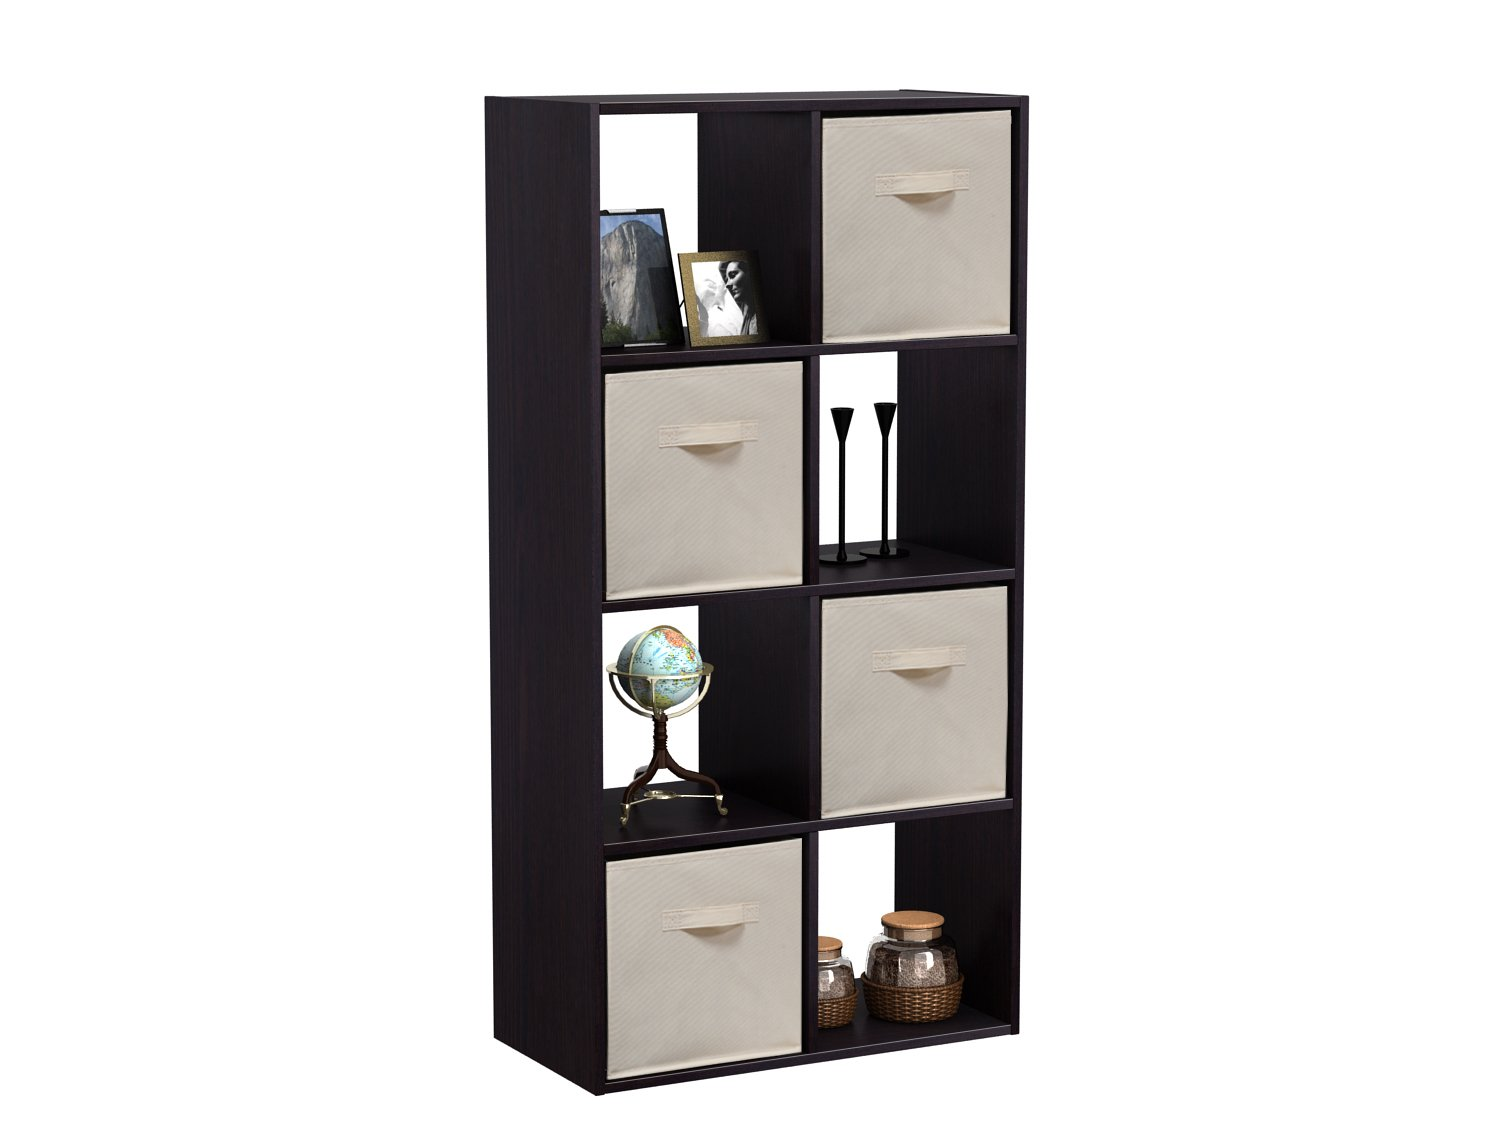 Homestar 8 Cube with Fabric Bins, Black Brown by Home Star (Image #3)